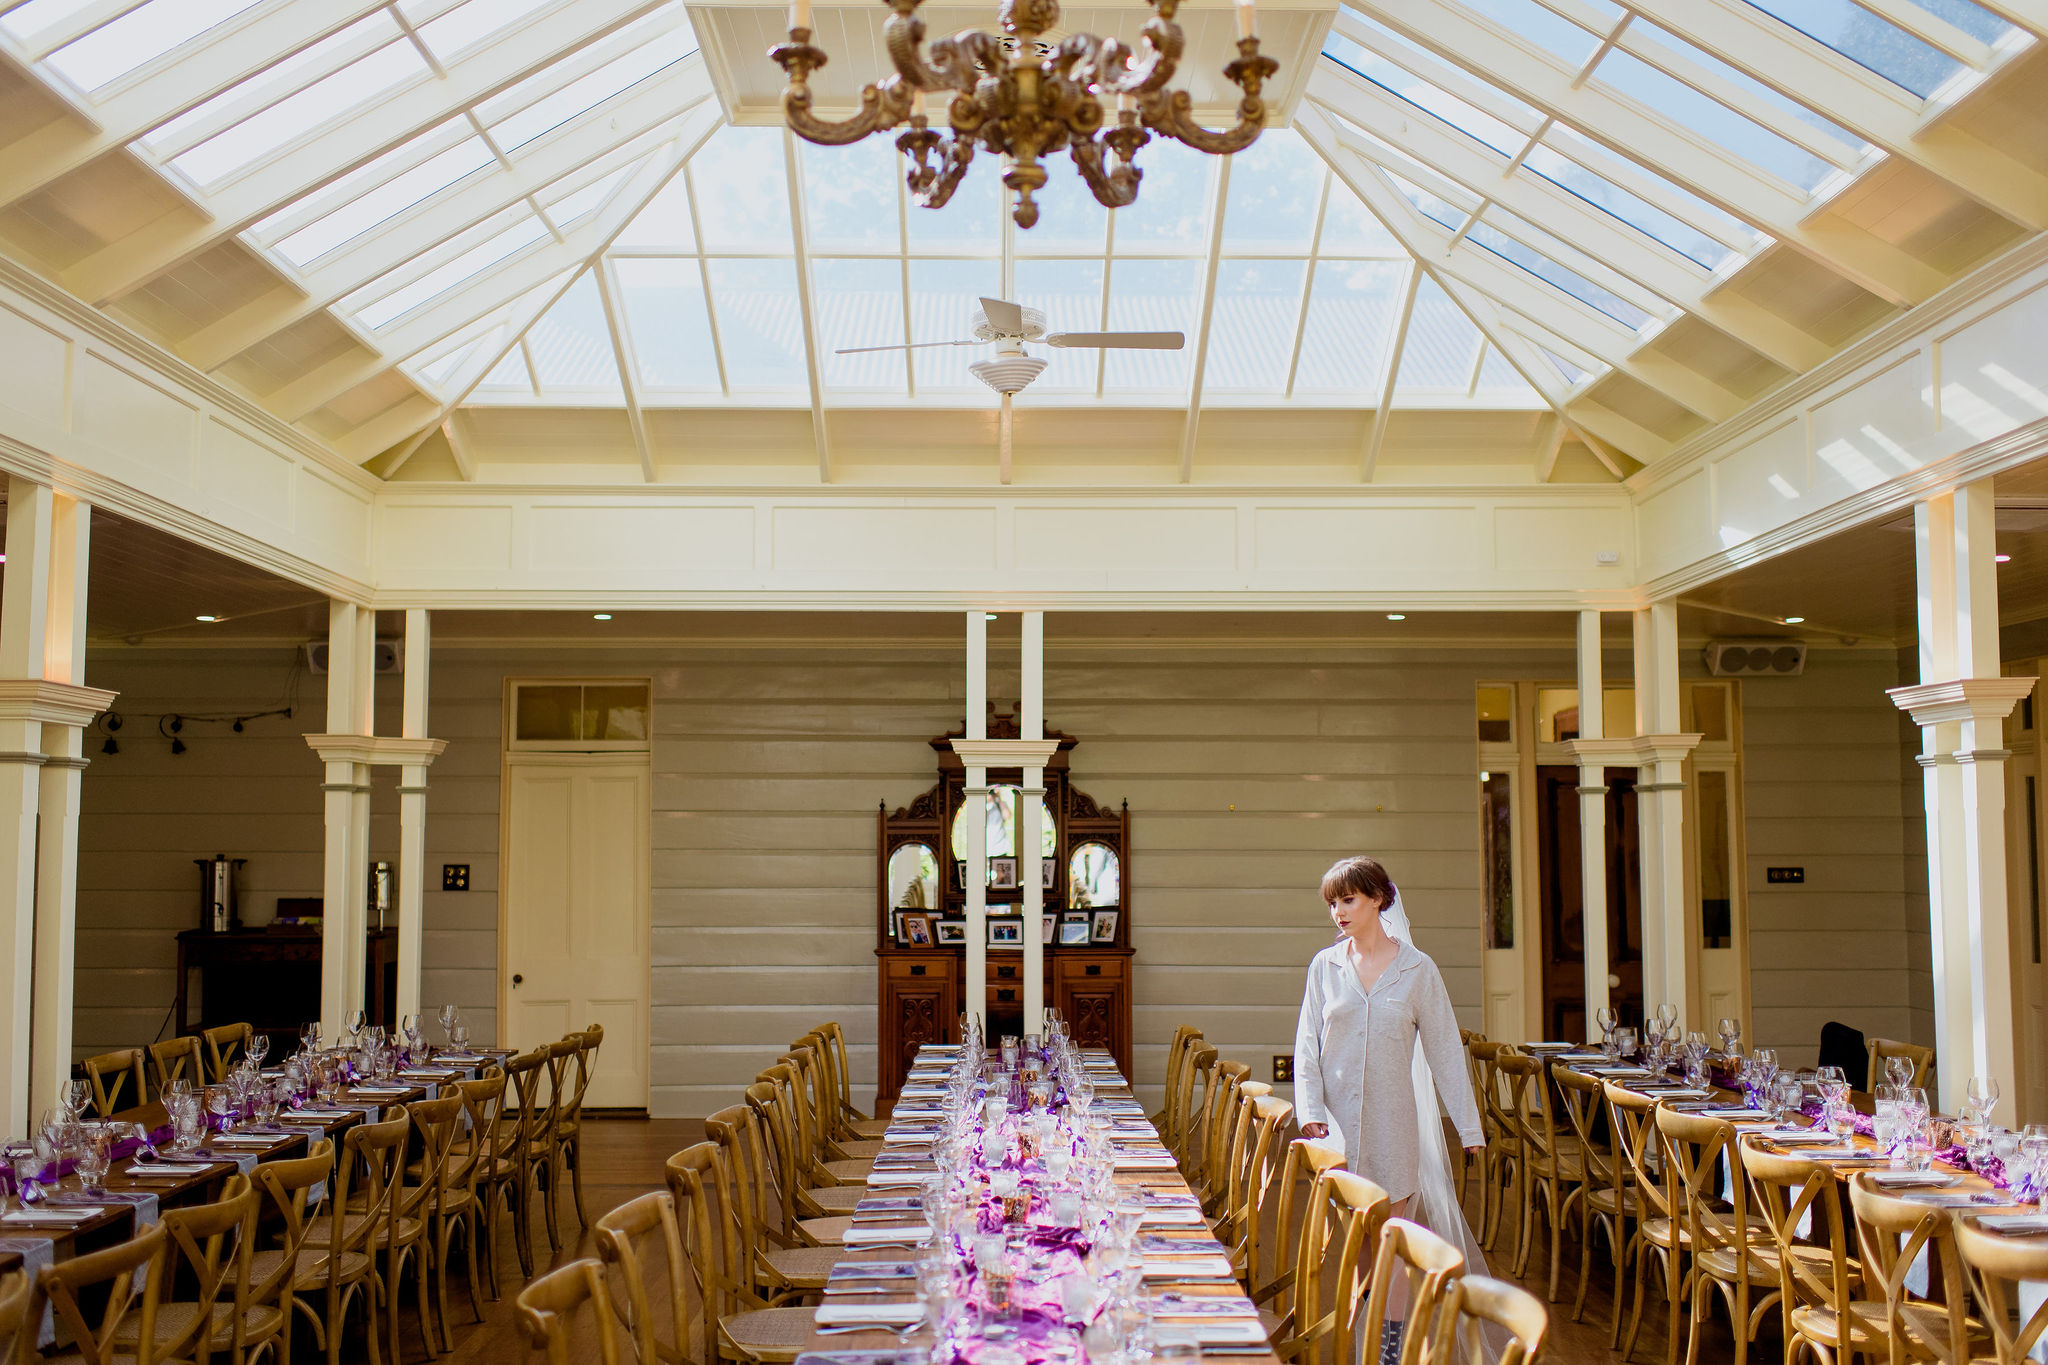 Bride-to-be examining dining hall with glass roof